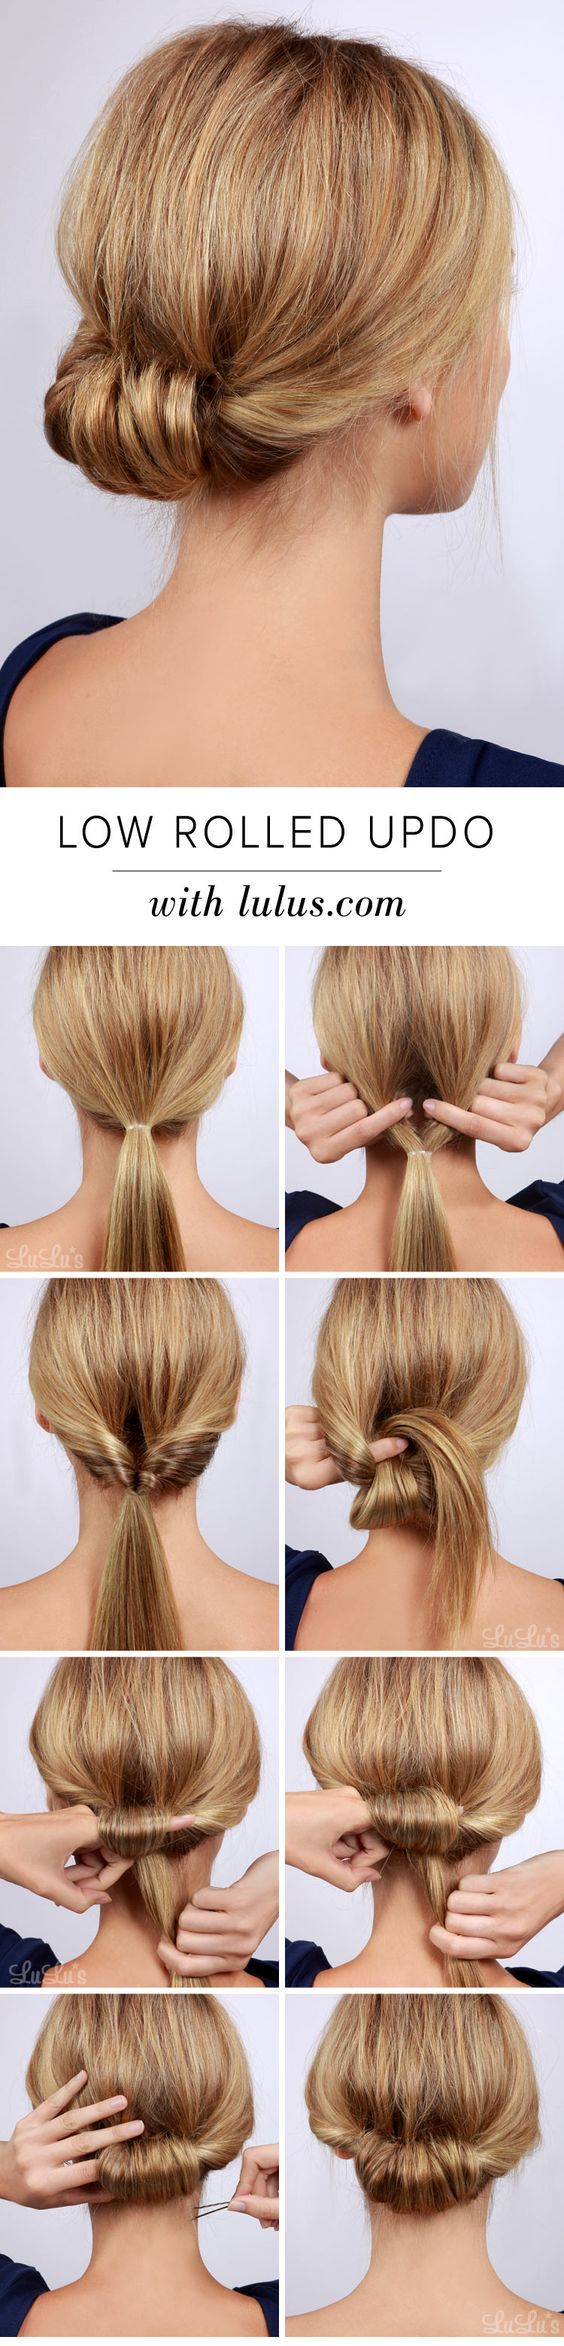 Best 25 straight hair updo ideas on pinterest hair updo easy 60 easy step by step hair tutorials for long medium and short hair solutioingenieria Choice Image